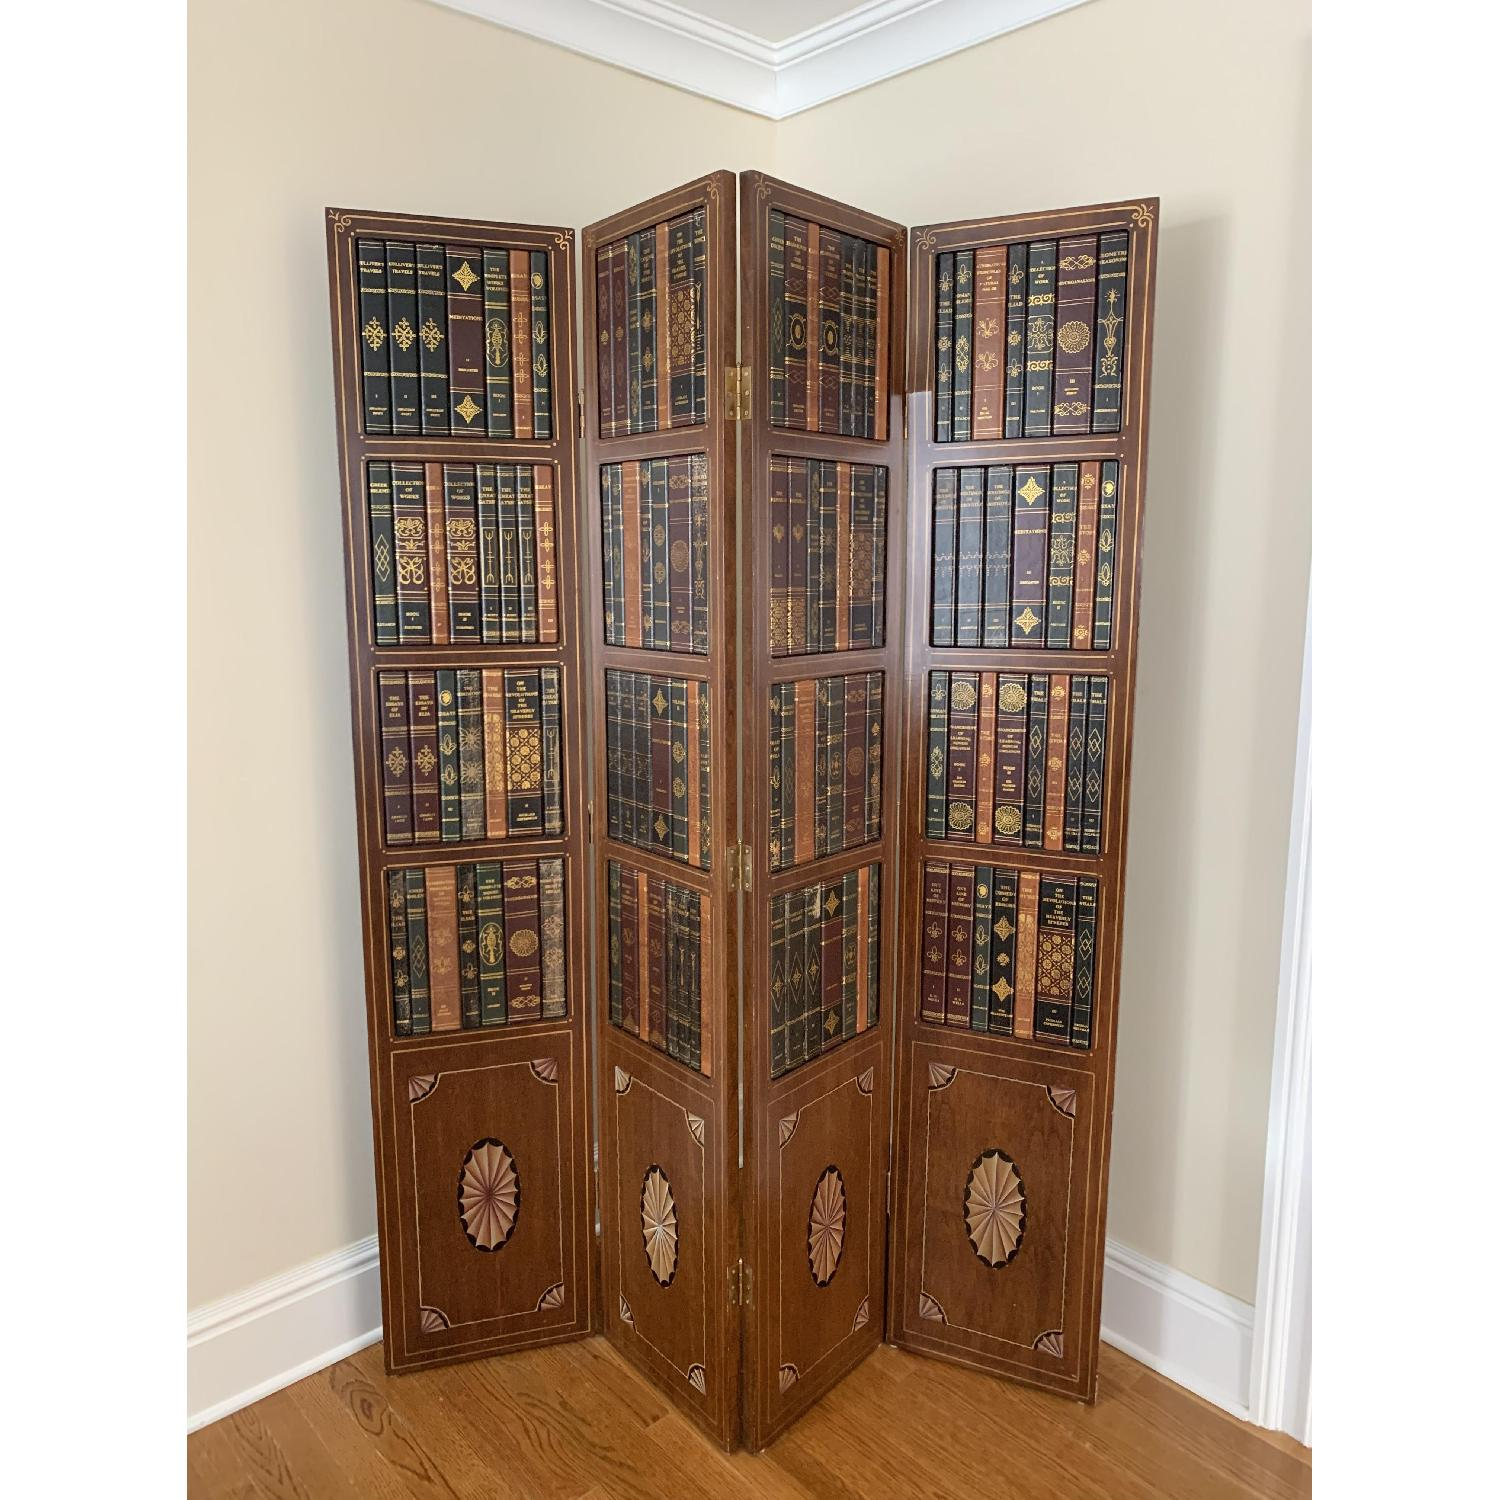 Maitland-Smith Tooled Leather Book Room Divider - image-1